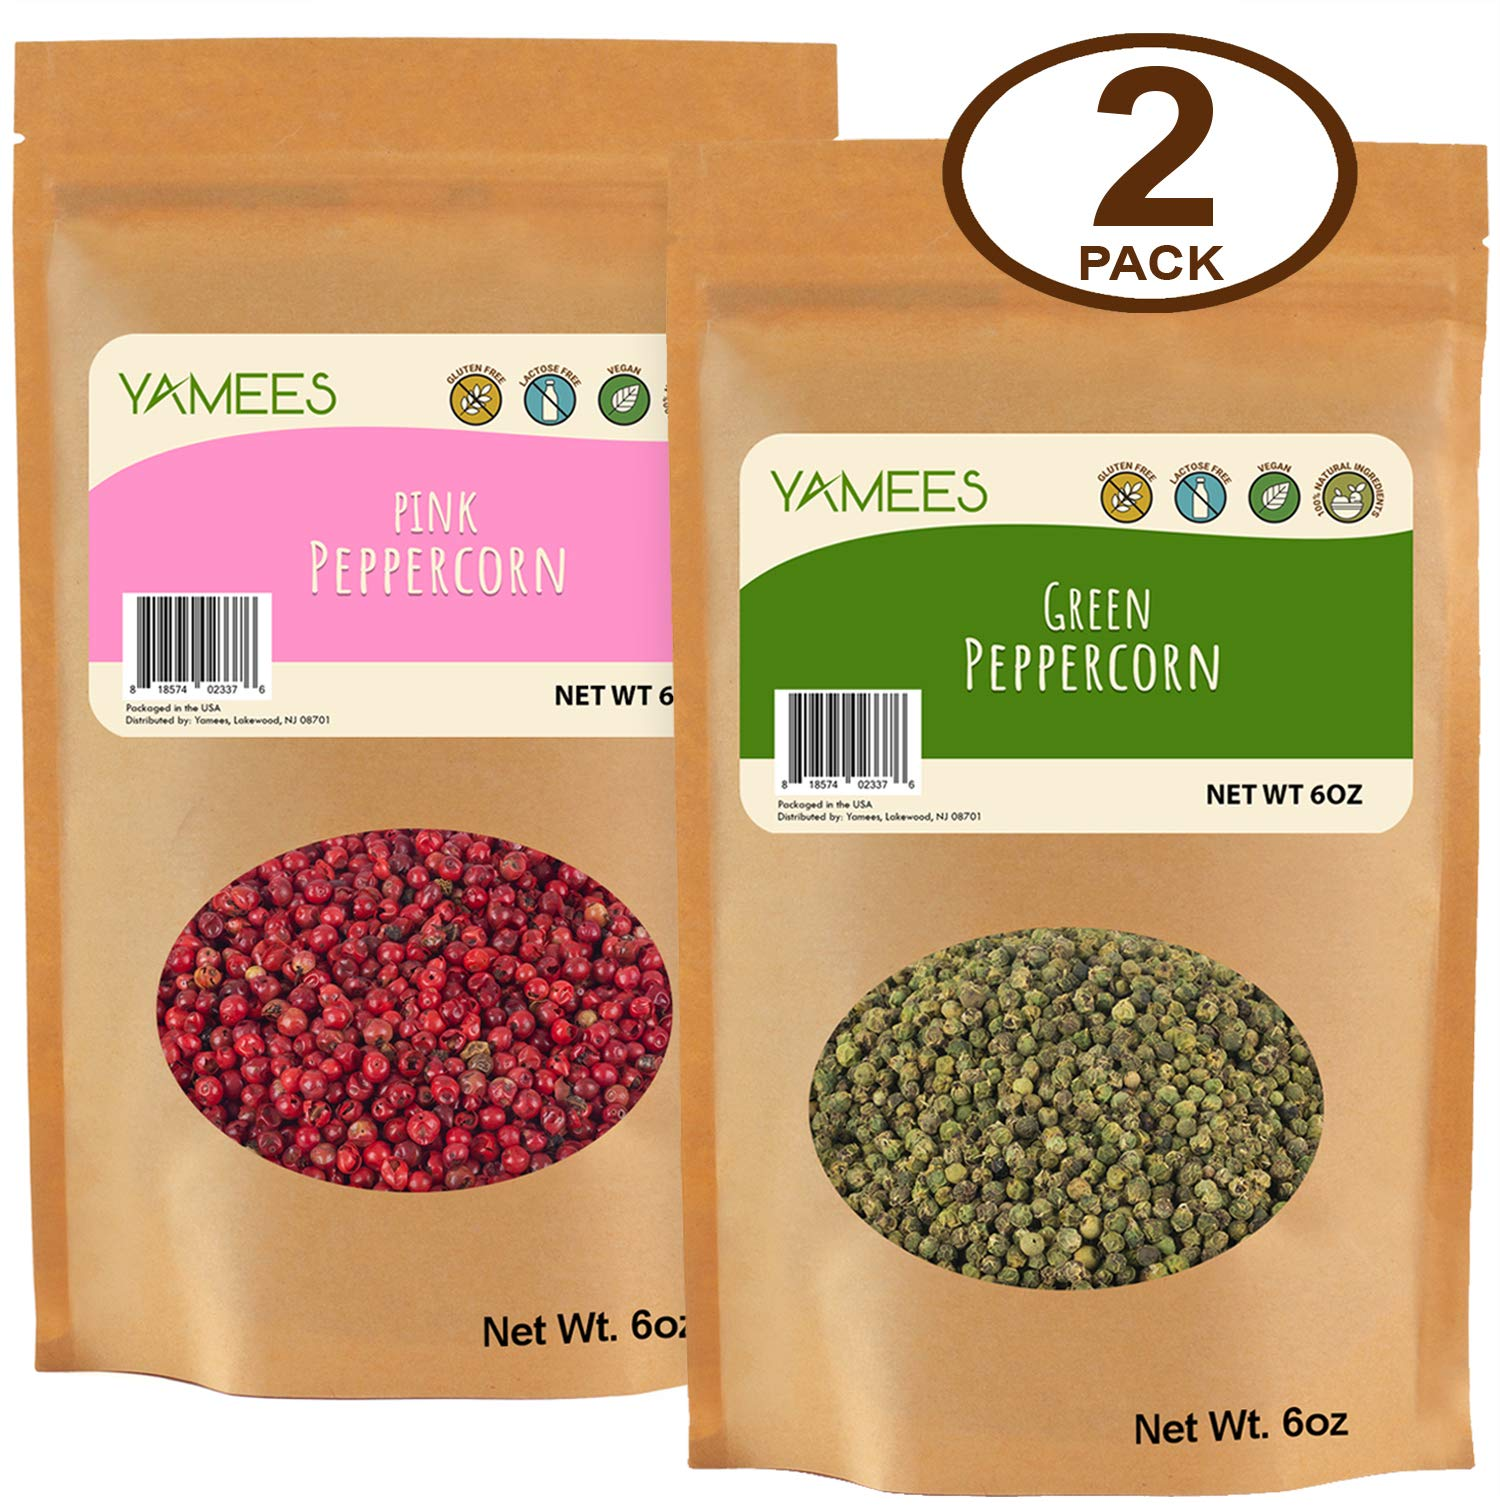 Yamees Peppercorns - Pink Peppercorns - Green Peppercorns - Mix Peppercorns - Bulk Spices - 2 Pack of 6 Ounce Each - Peppercorn Medley by YAMEES